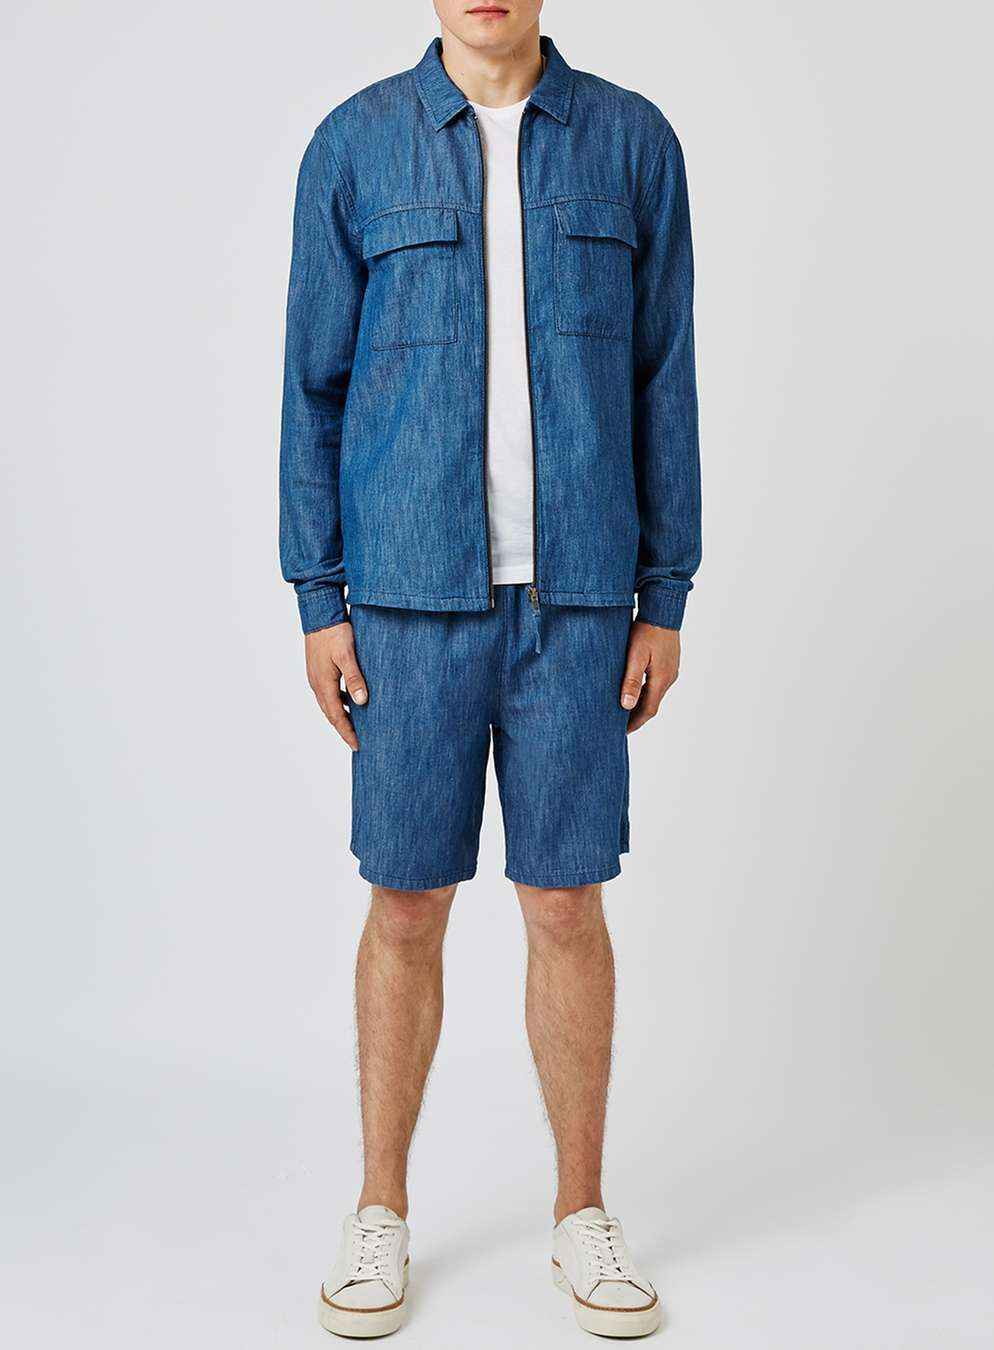 03f7c7f6b5d LTD Blue Chambray Linen Mix Shorts - View All Clearance - Clearance - TOPMAN